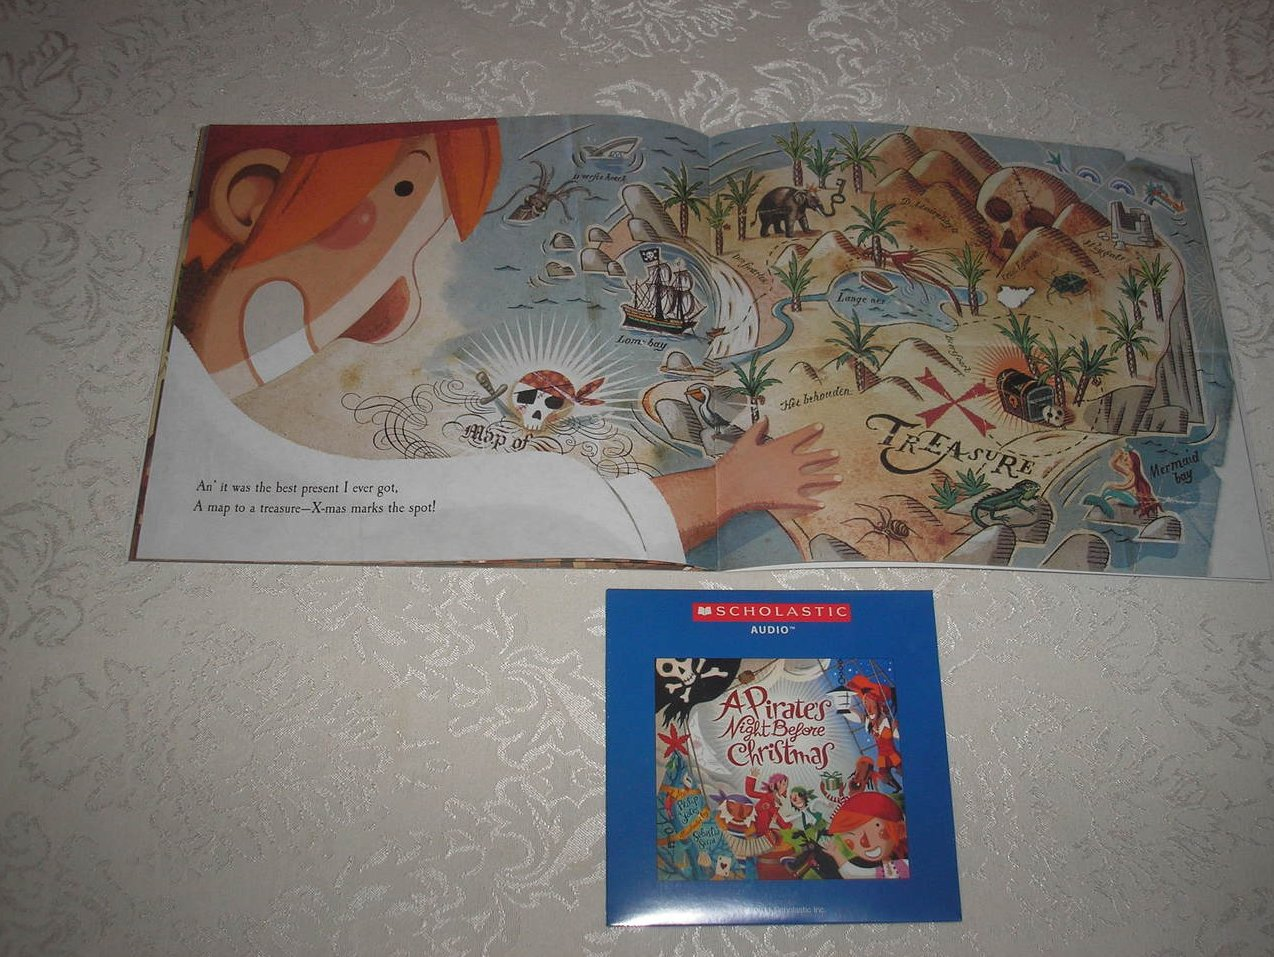 Image 4 of A Pirate's Night Before Christmas brand new sc and sealed Audio CD Philip Yates